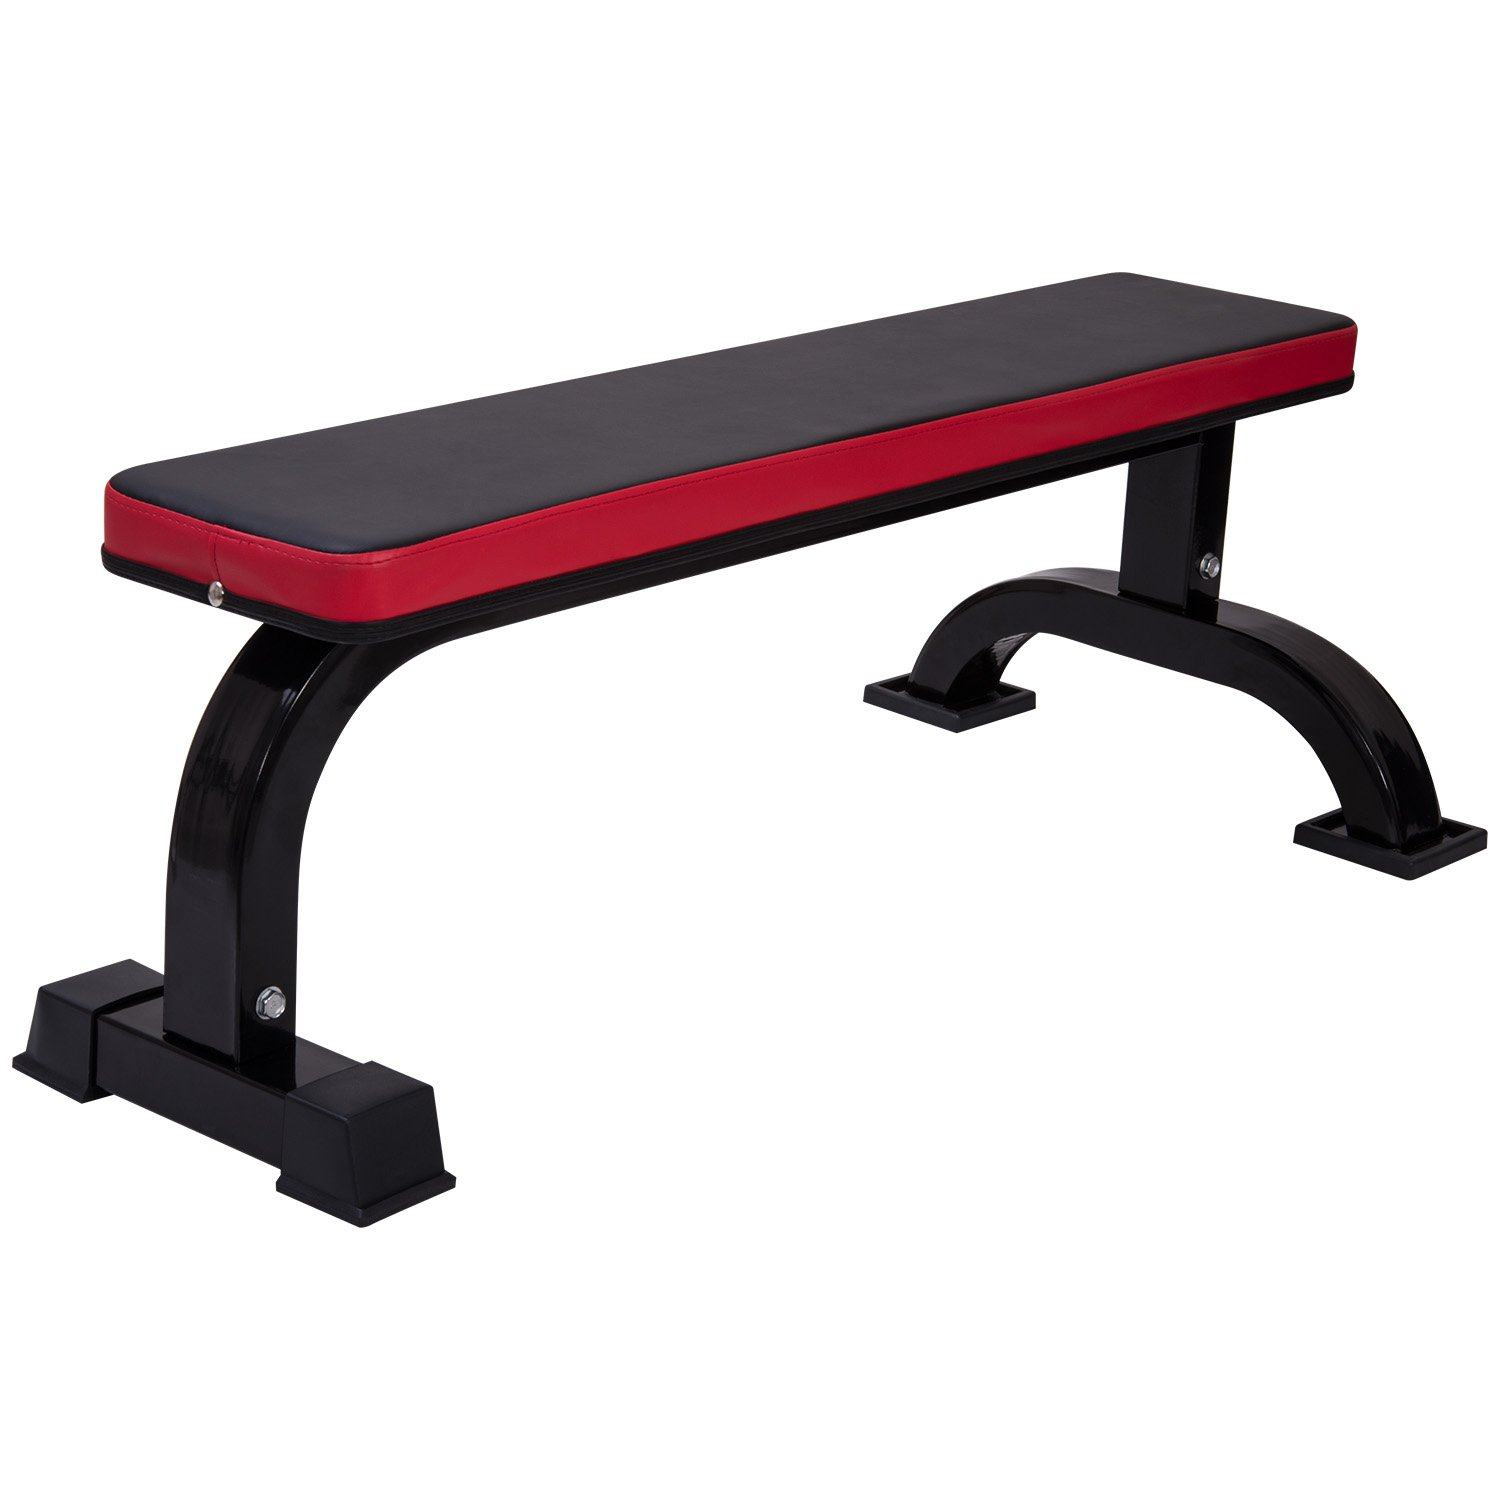 Ollieroo Workout Bench Flat Bench Flat Utility Weight Bench Work Out Bench Weight 1100lb Rated Capacity for Weight Training Sit Up Bench Strength Training and Abs Exercises, Weight Lifting